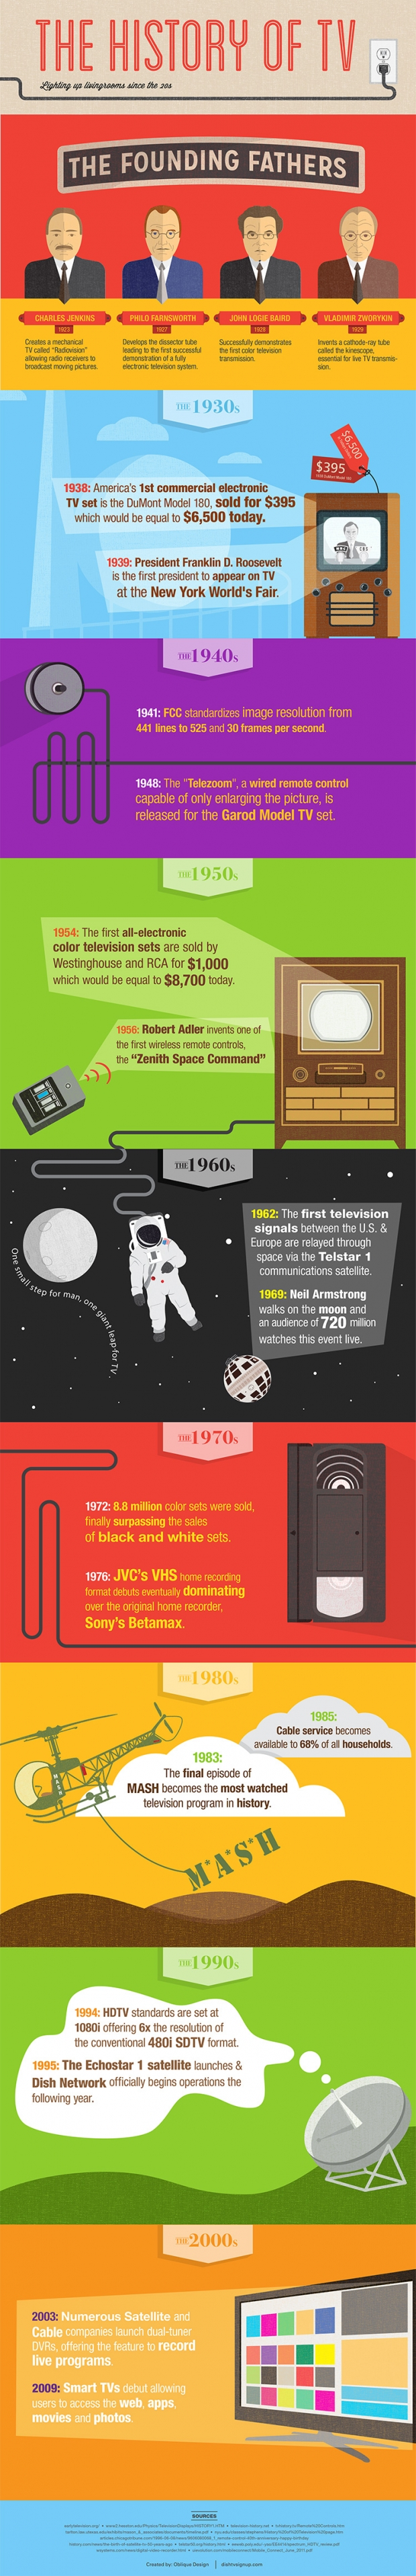 history-of-tv-infographic